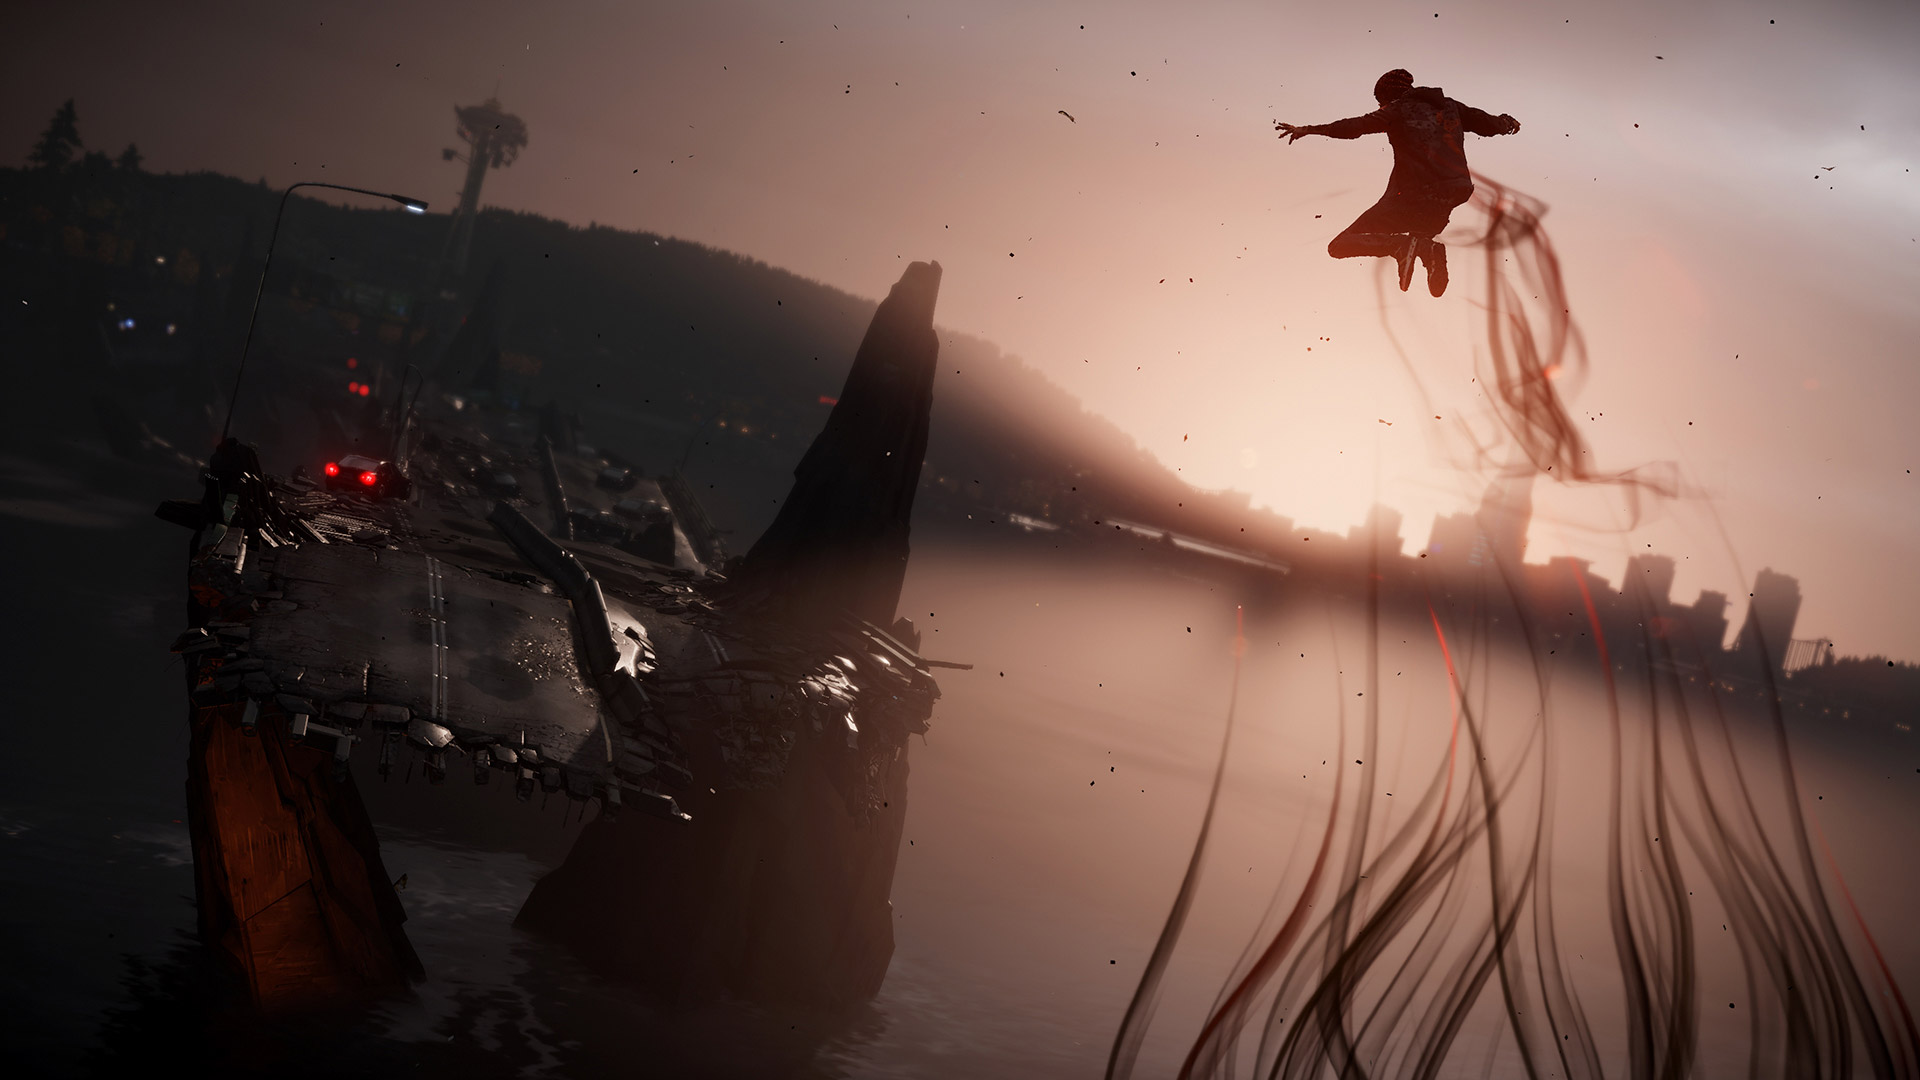 Free Infamous: Second Son Wallpaper in 1920x1080